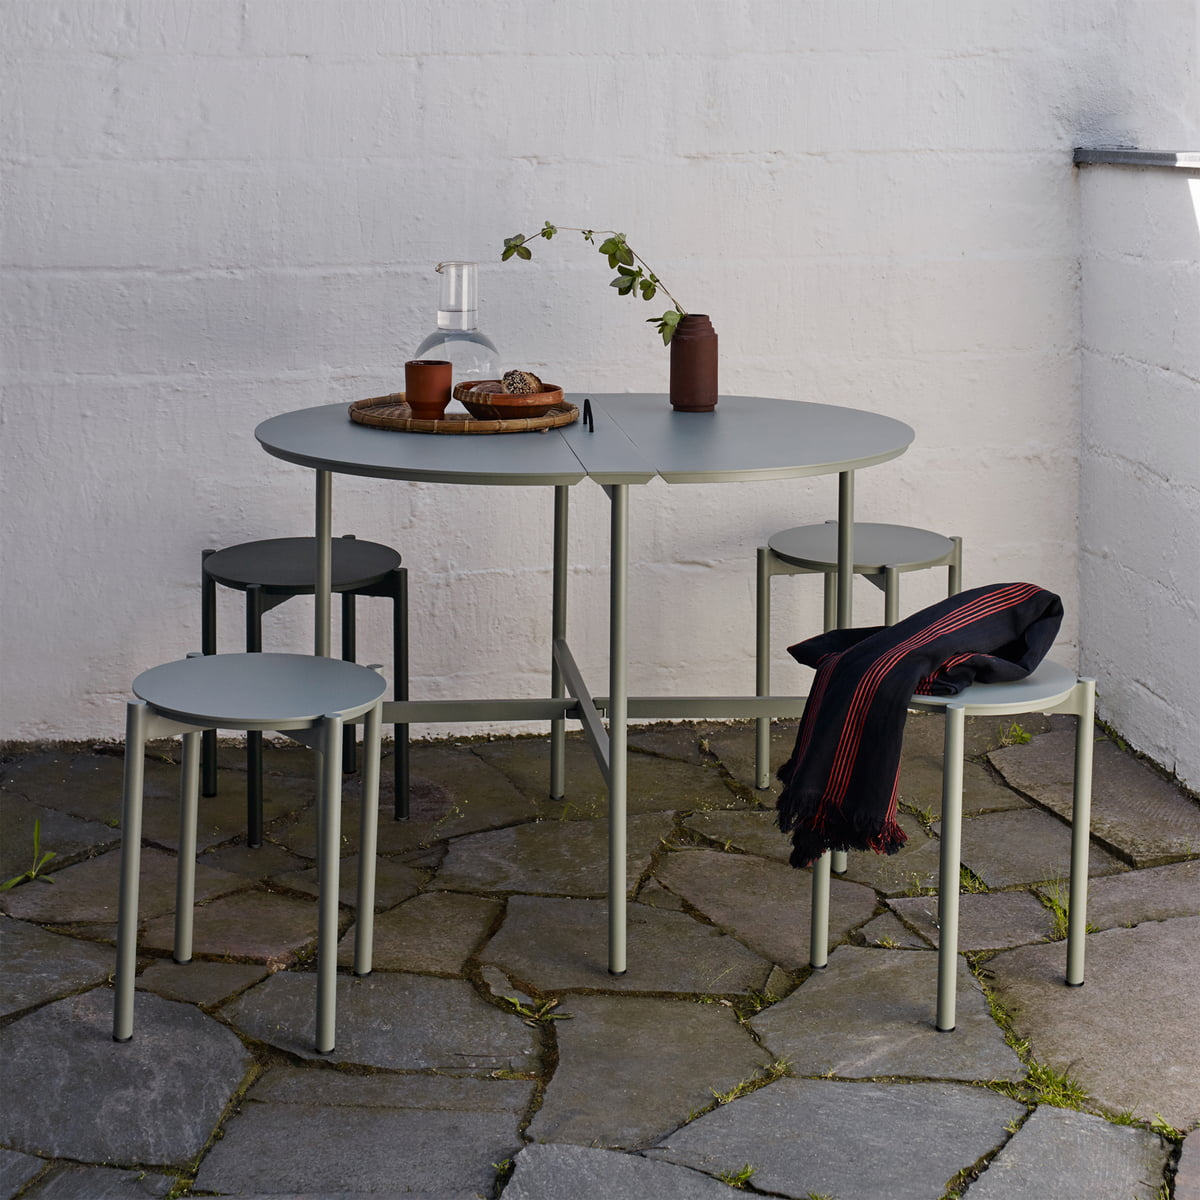 c485f093907 The Skaterak - Picnic Table and Picnic Stool in Slate Grey on the Terrace.